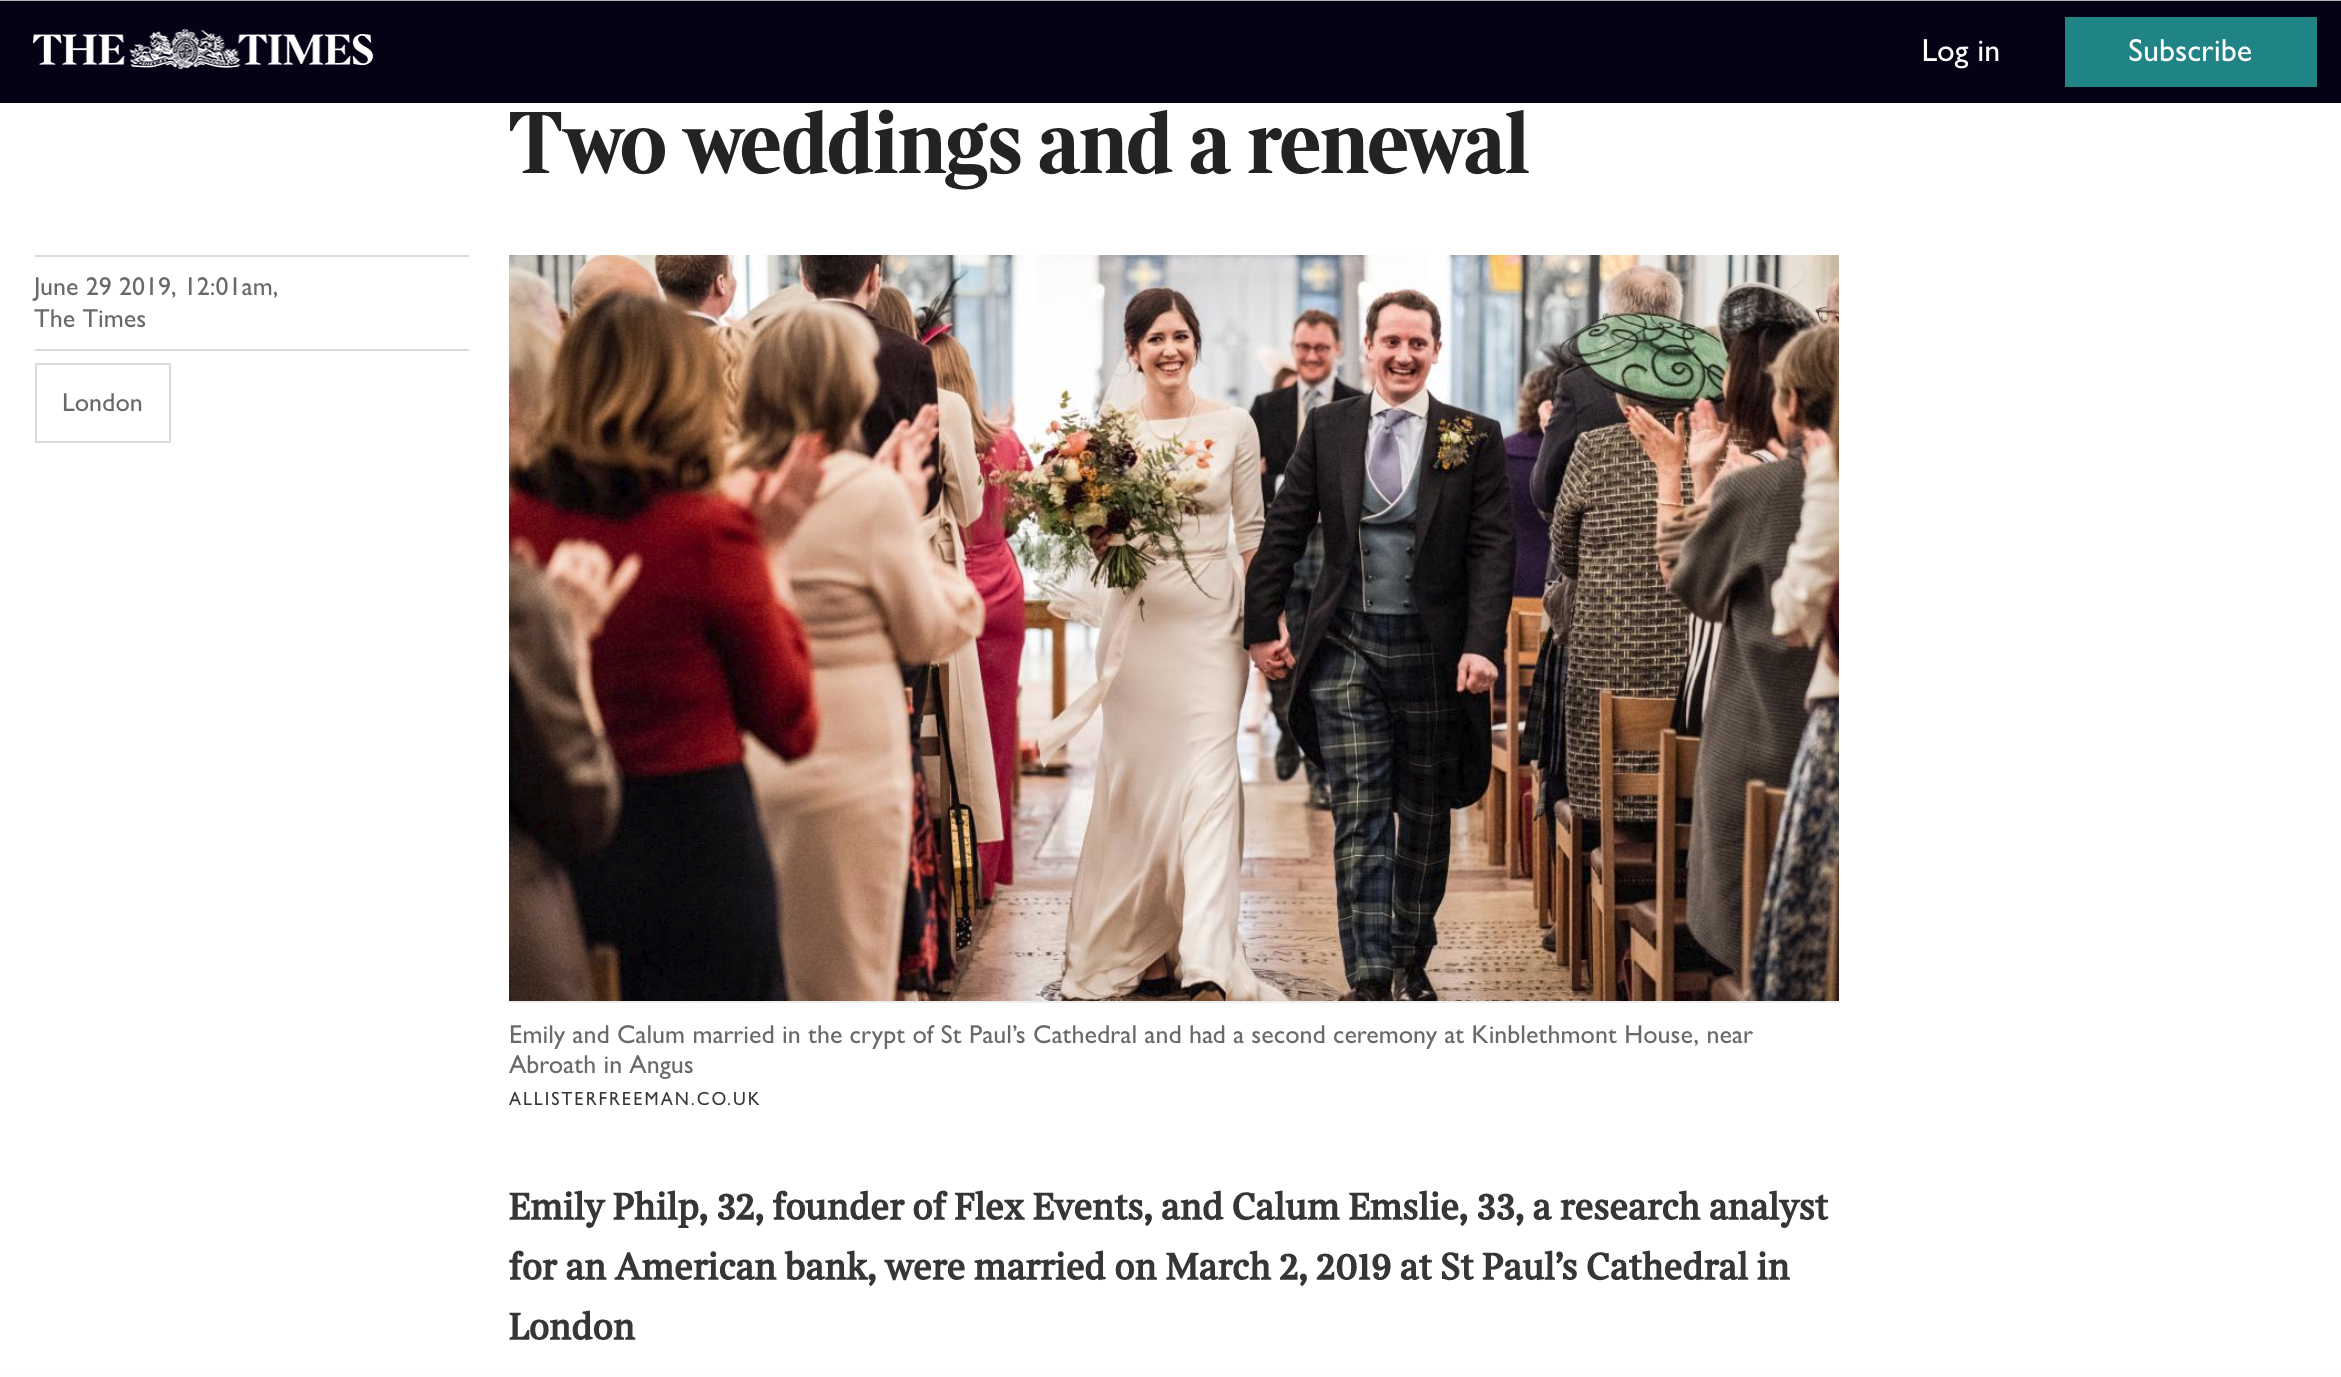 The Times wedding feature